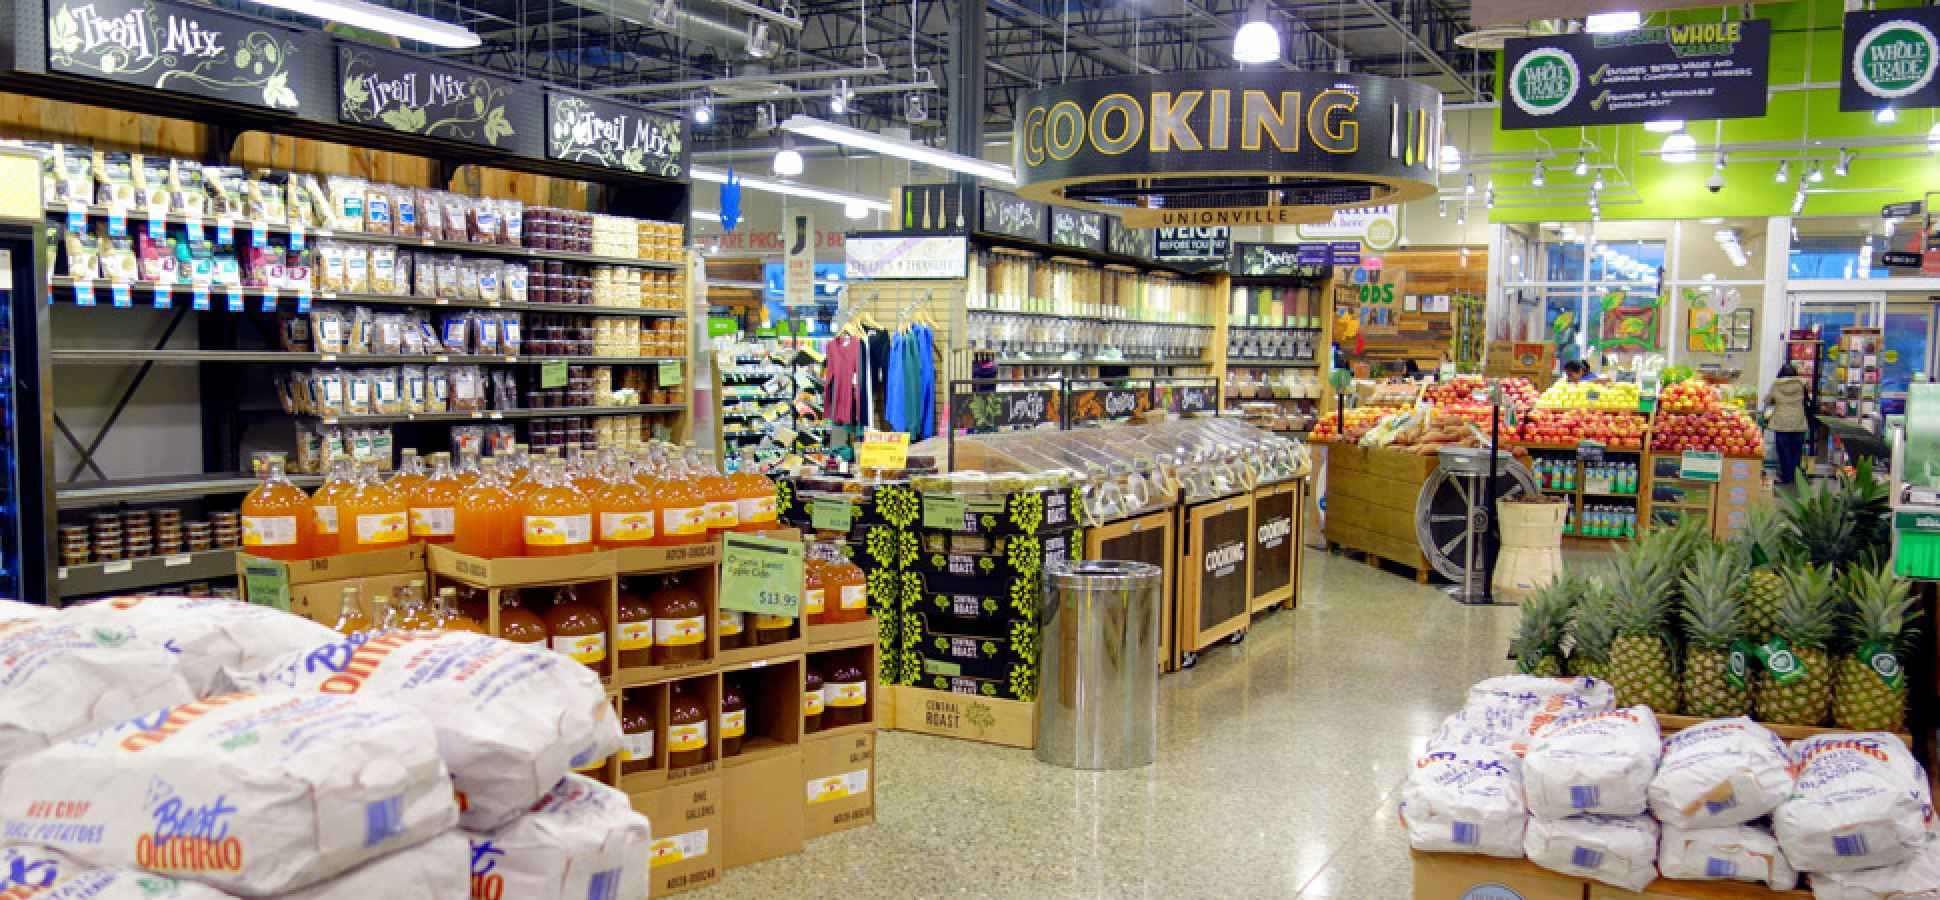 How to Persuade a Huge Retailer to Give You Shelf Space